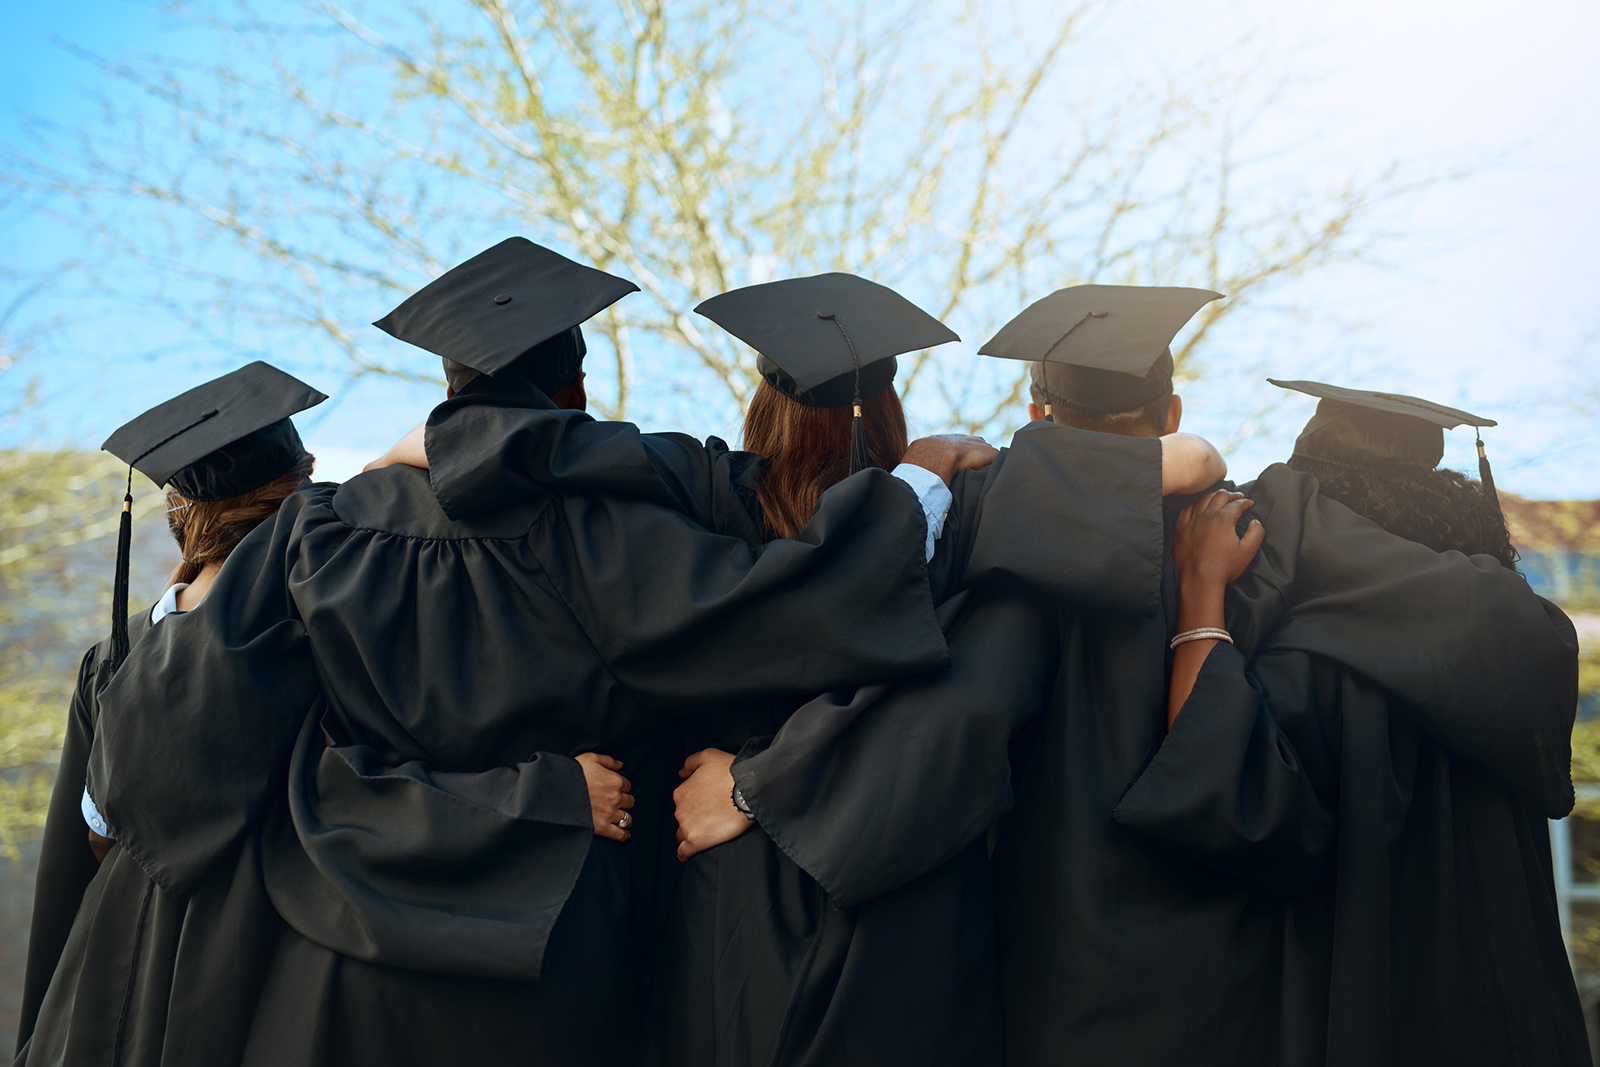 Rearview shot of a group of young students embracing on graduation day